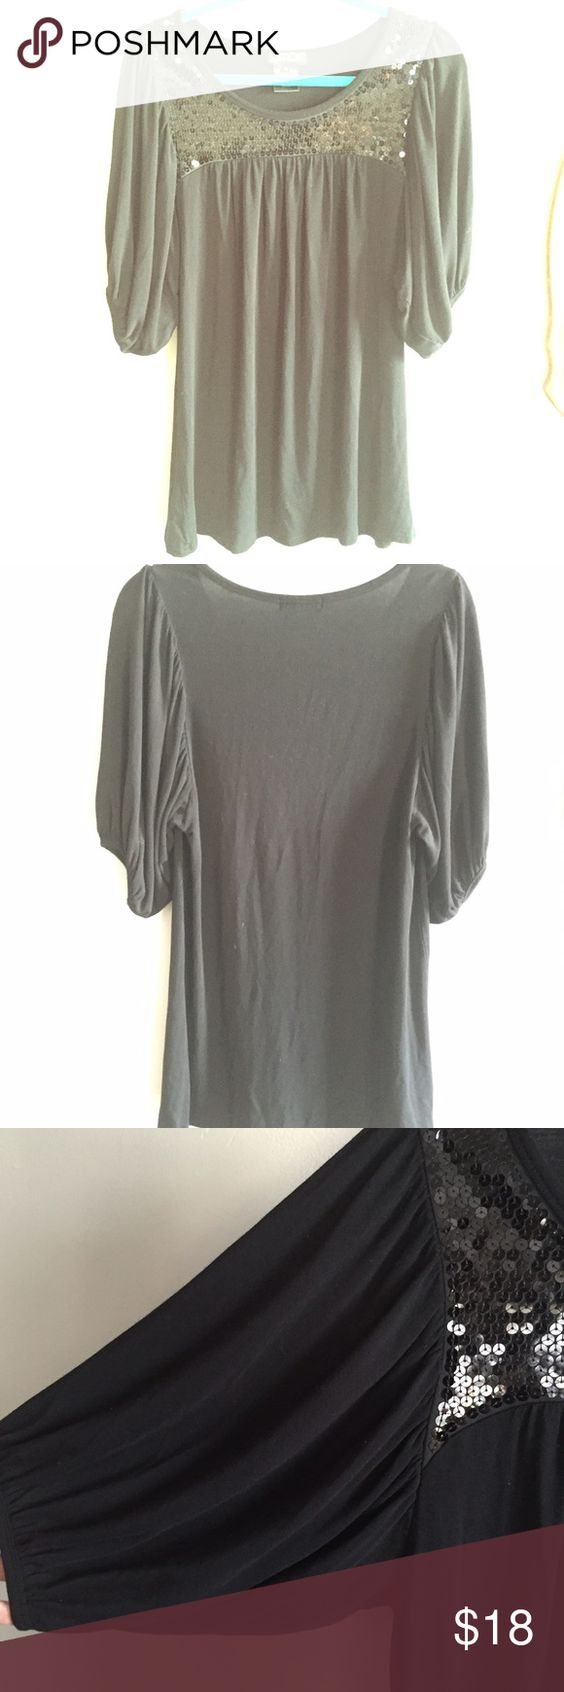 LaROK Black Tunic This can be worn as a mini dress OR paired with skinnies! It's definitely a fun black top to have in the closet. Best part... Oversized arms!! LaRok Tops Tunics